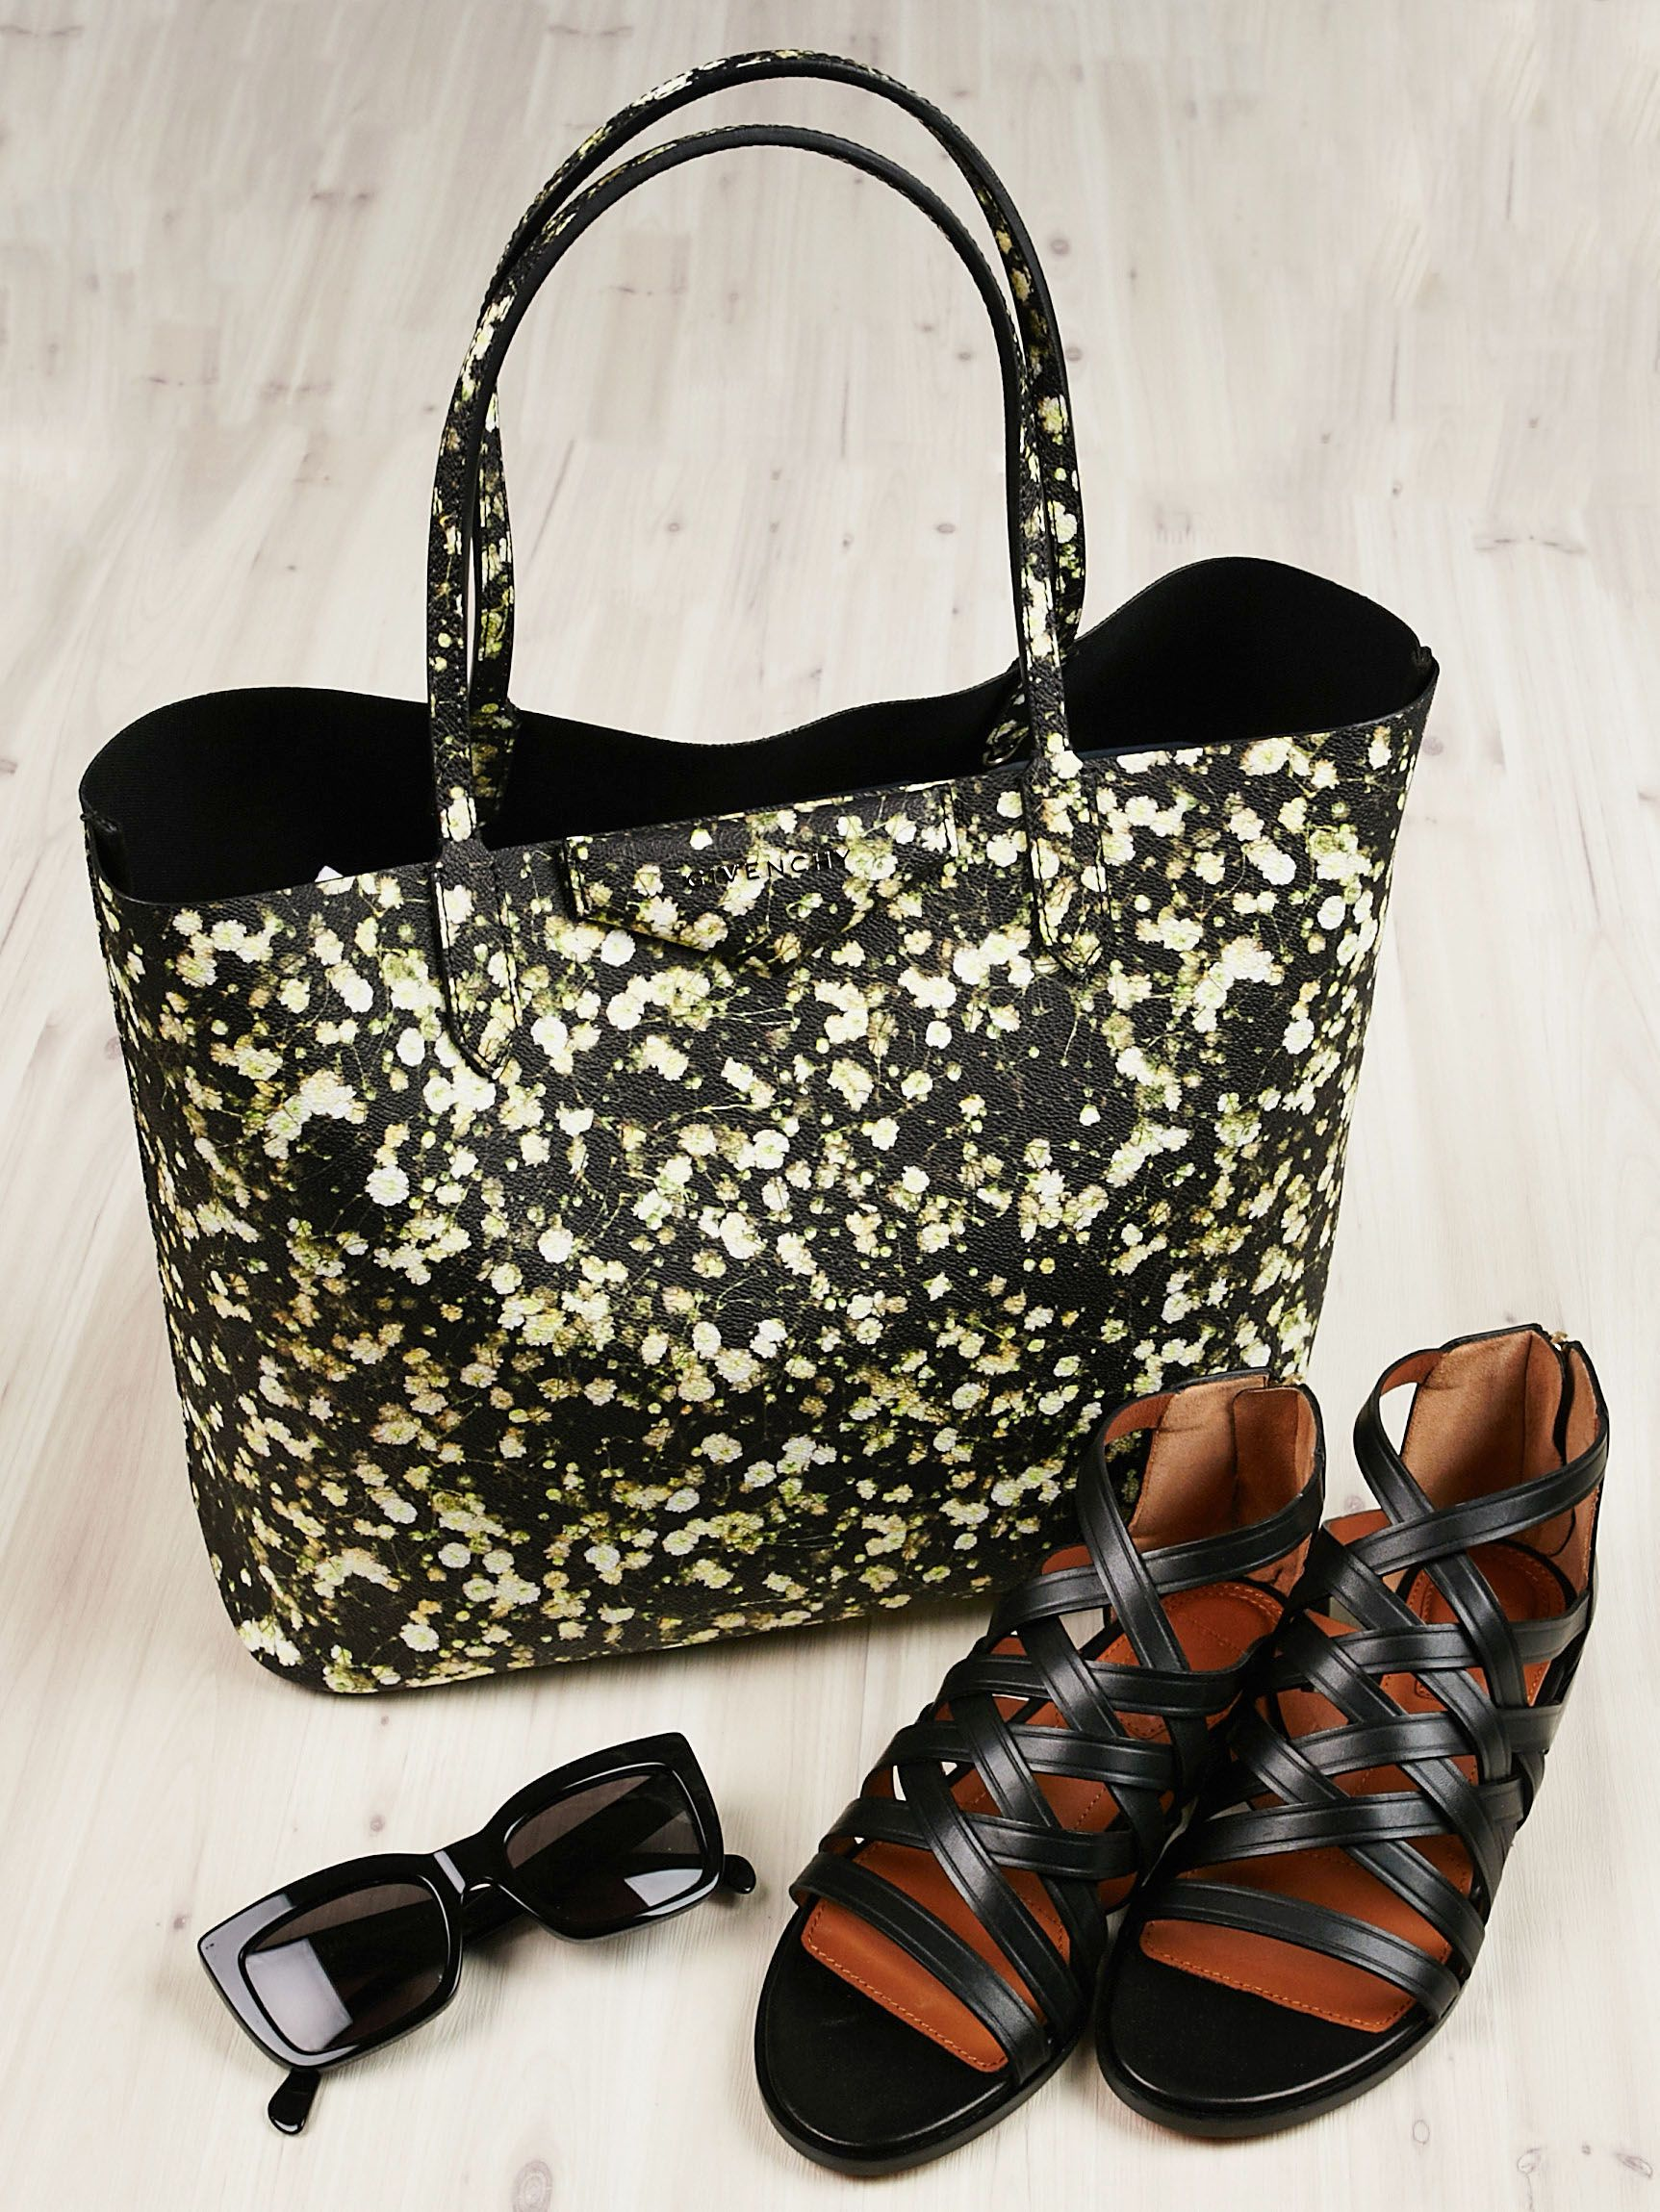 004c7e6734 This Givenchy Floral Antigona Tote pairs perfectly with summer essentials.  - Yoogi s Closet